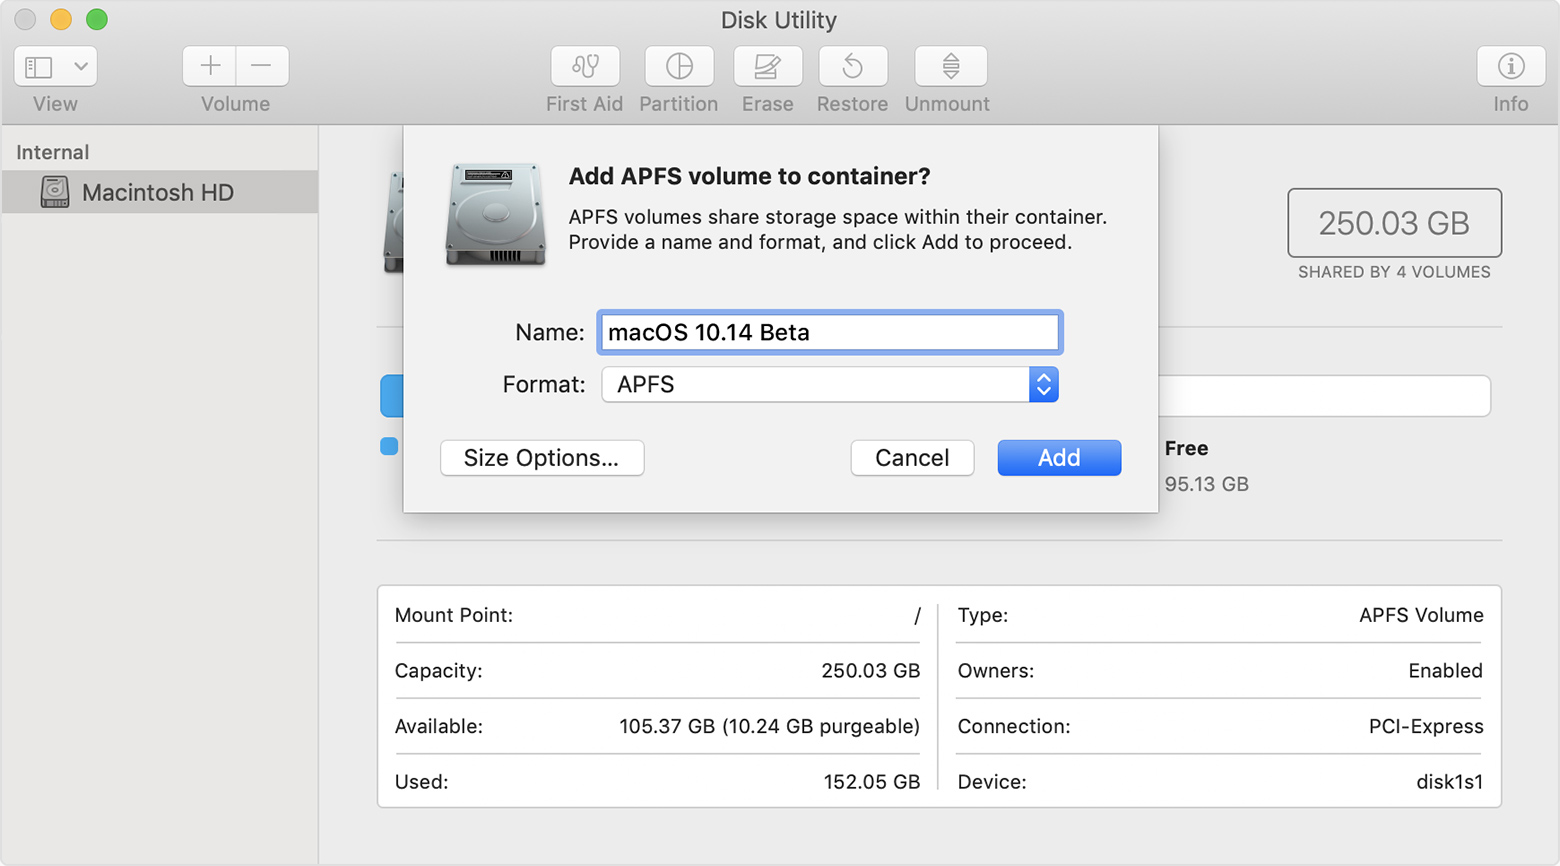 Disk Utility: Add APFS volume to container?